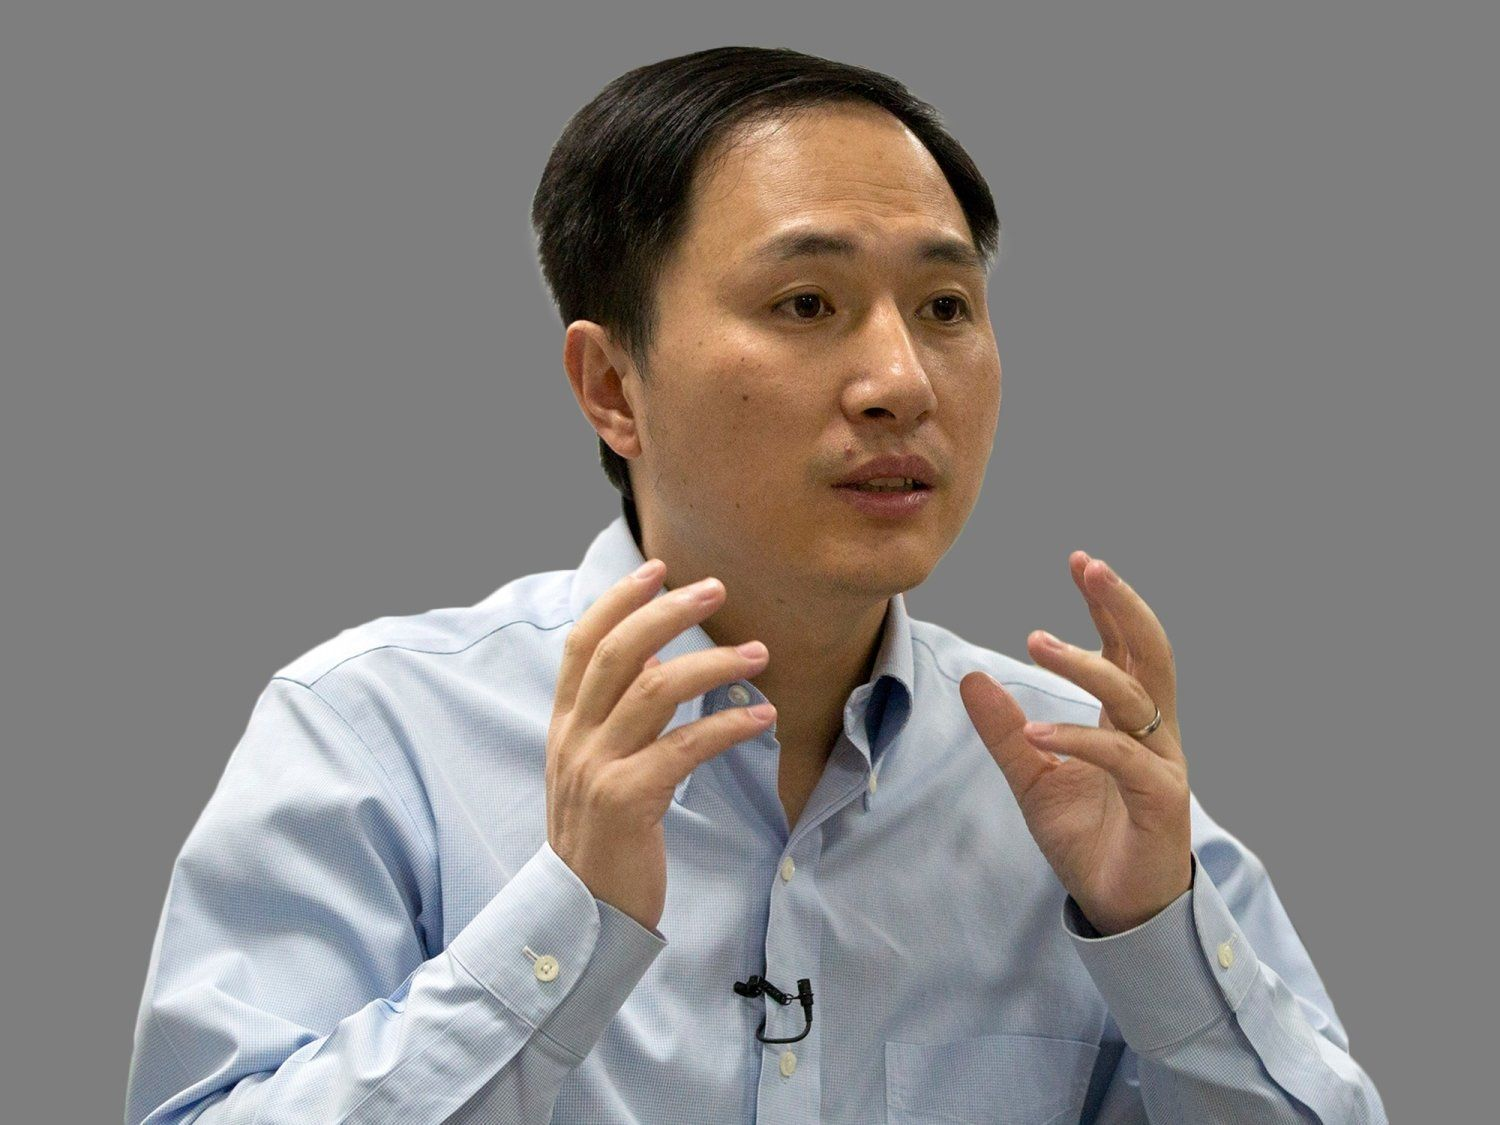 He Jiankui headshot, as scientist, graphic element on gray